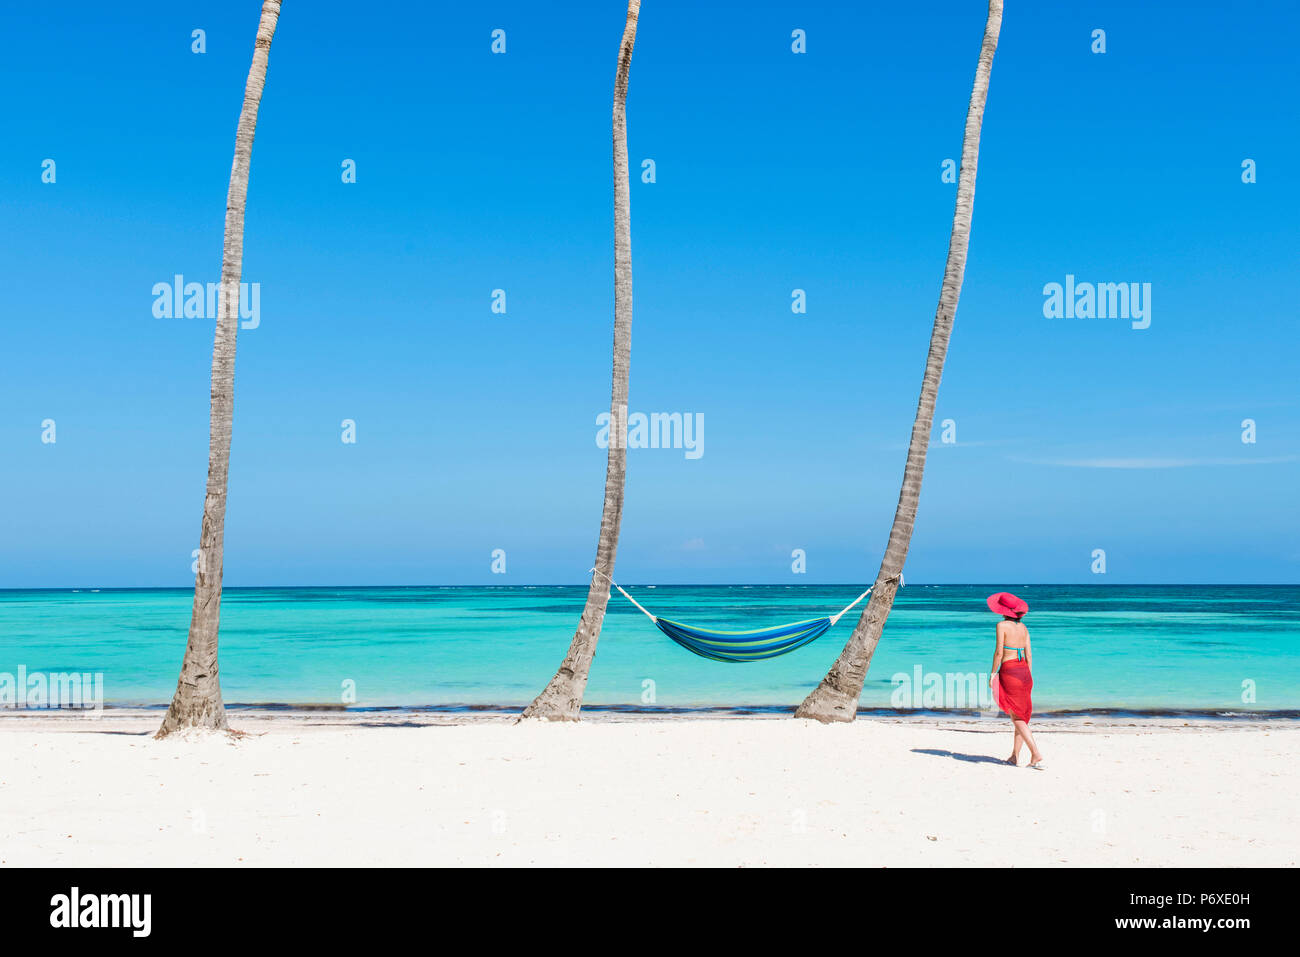 Juanillo Beach (playa Juanillo), Punta Cana, Dominican Republic. Woman walking on a palm-fringed beach (MR). - Stock Image